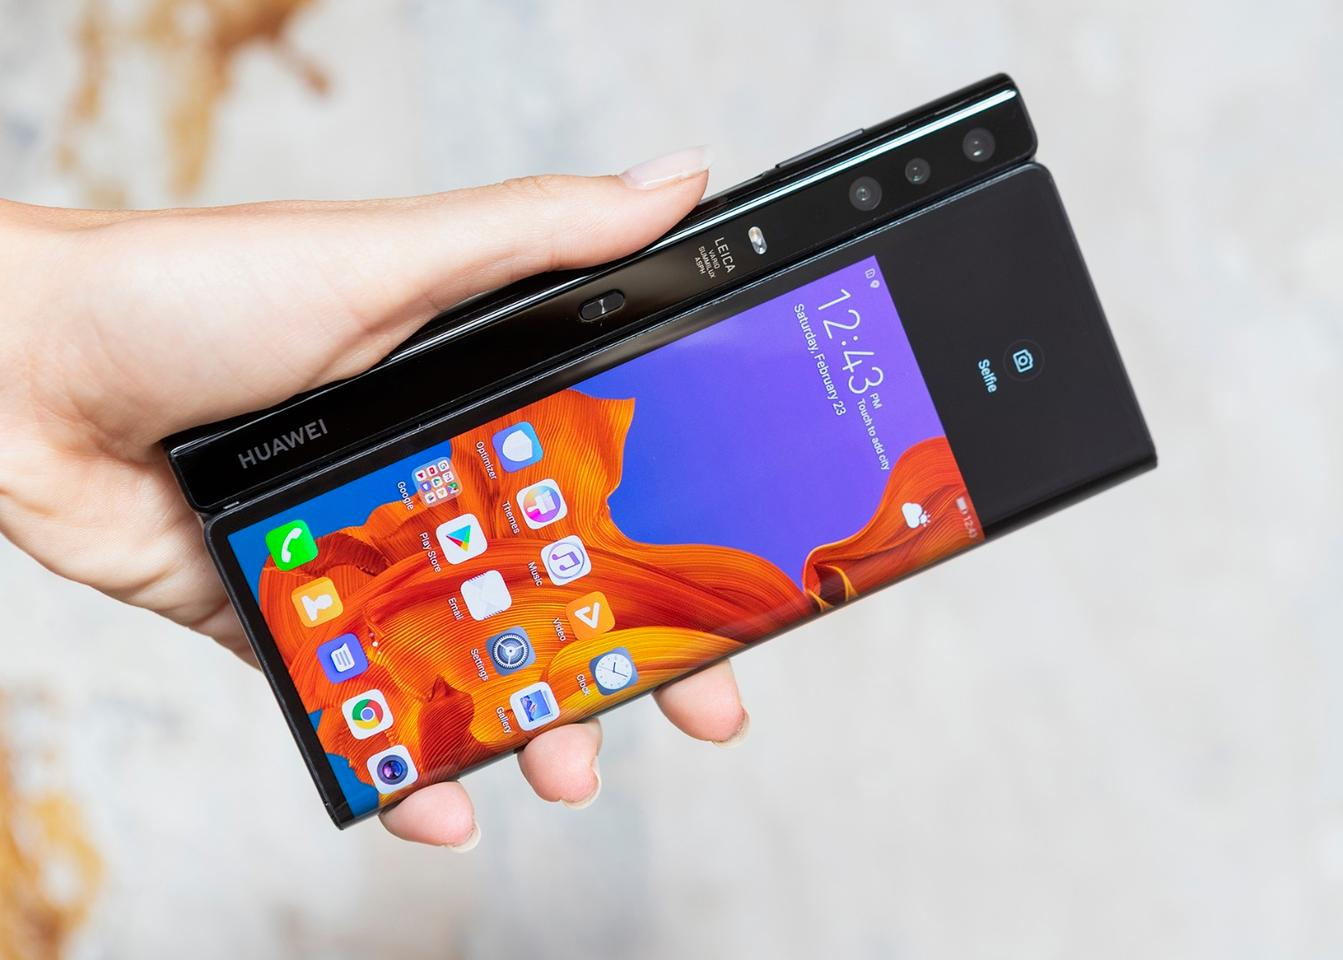 Huawei unveils the foldable Mate X phone, complete with 5G